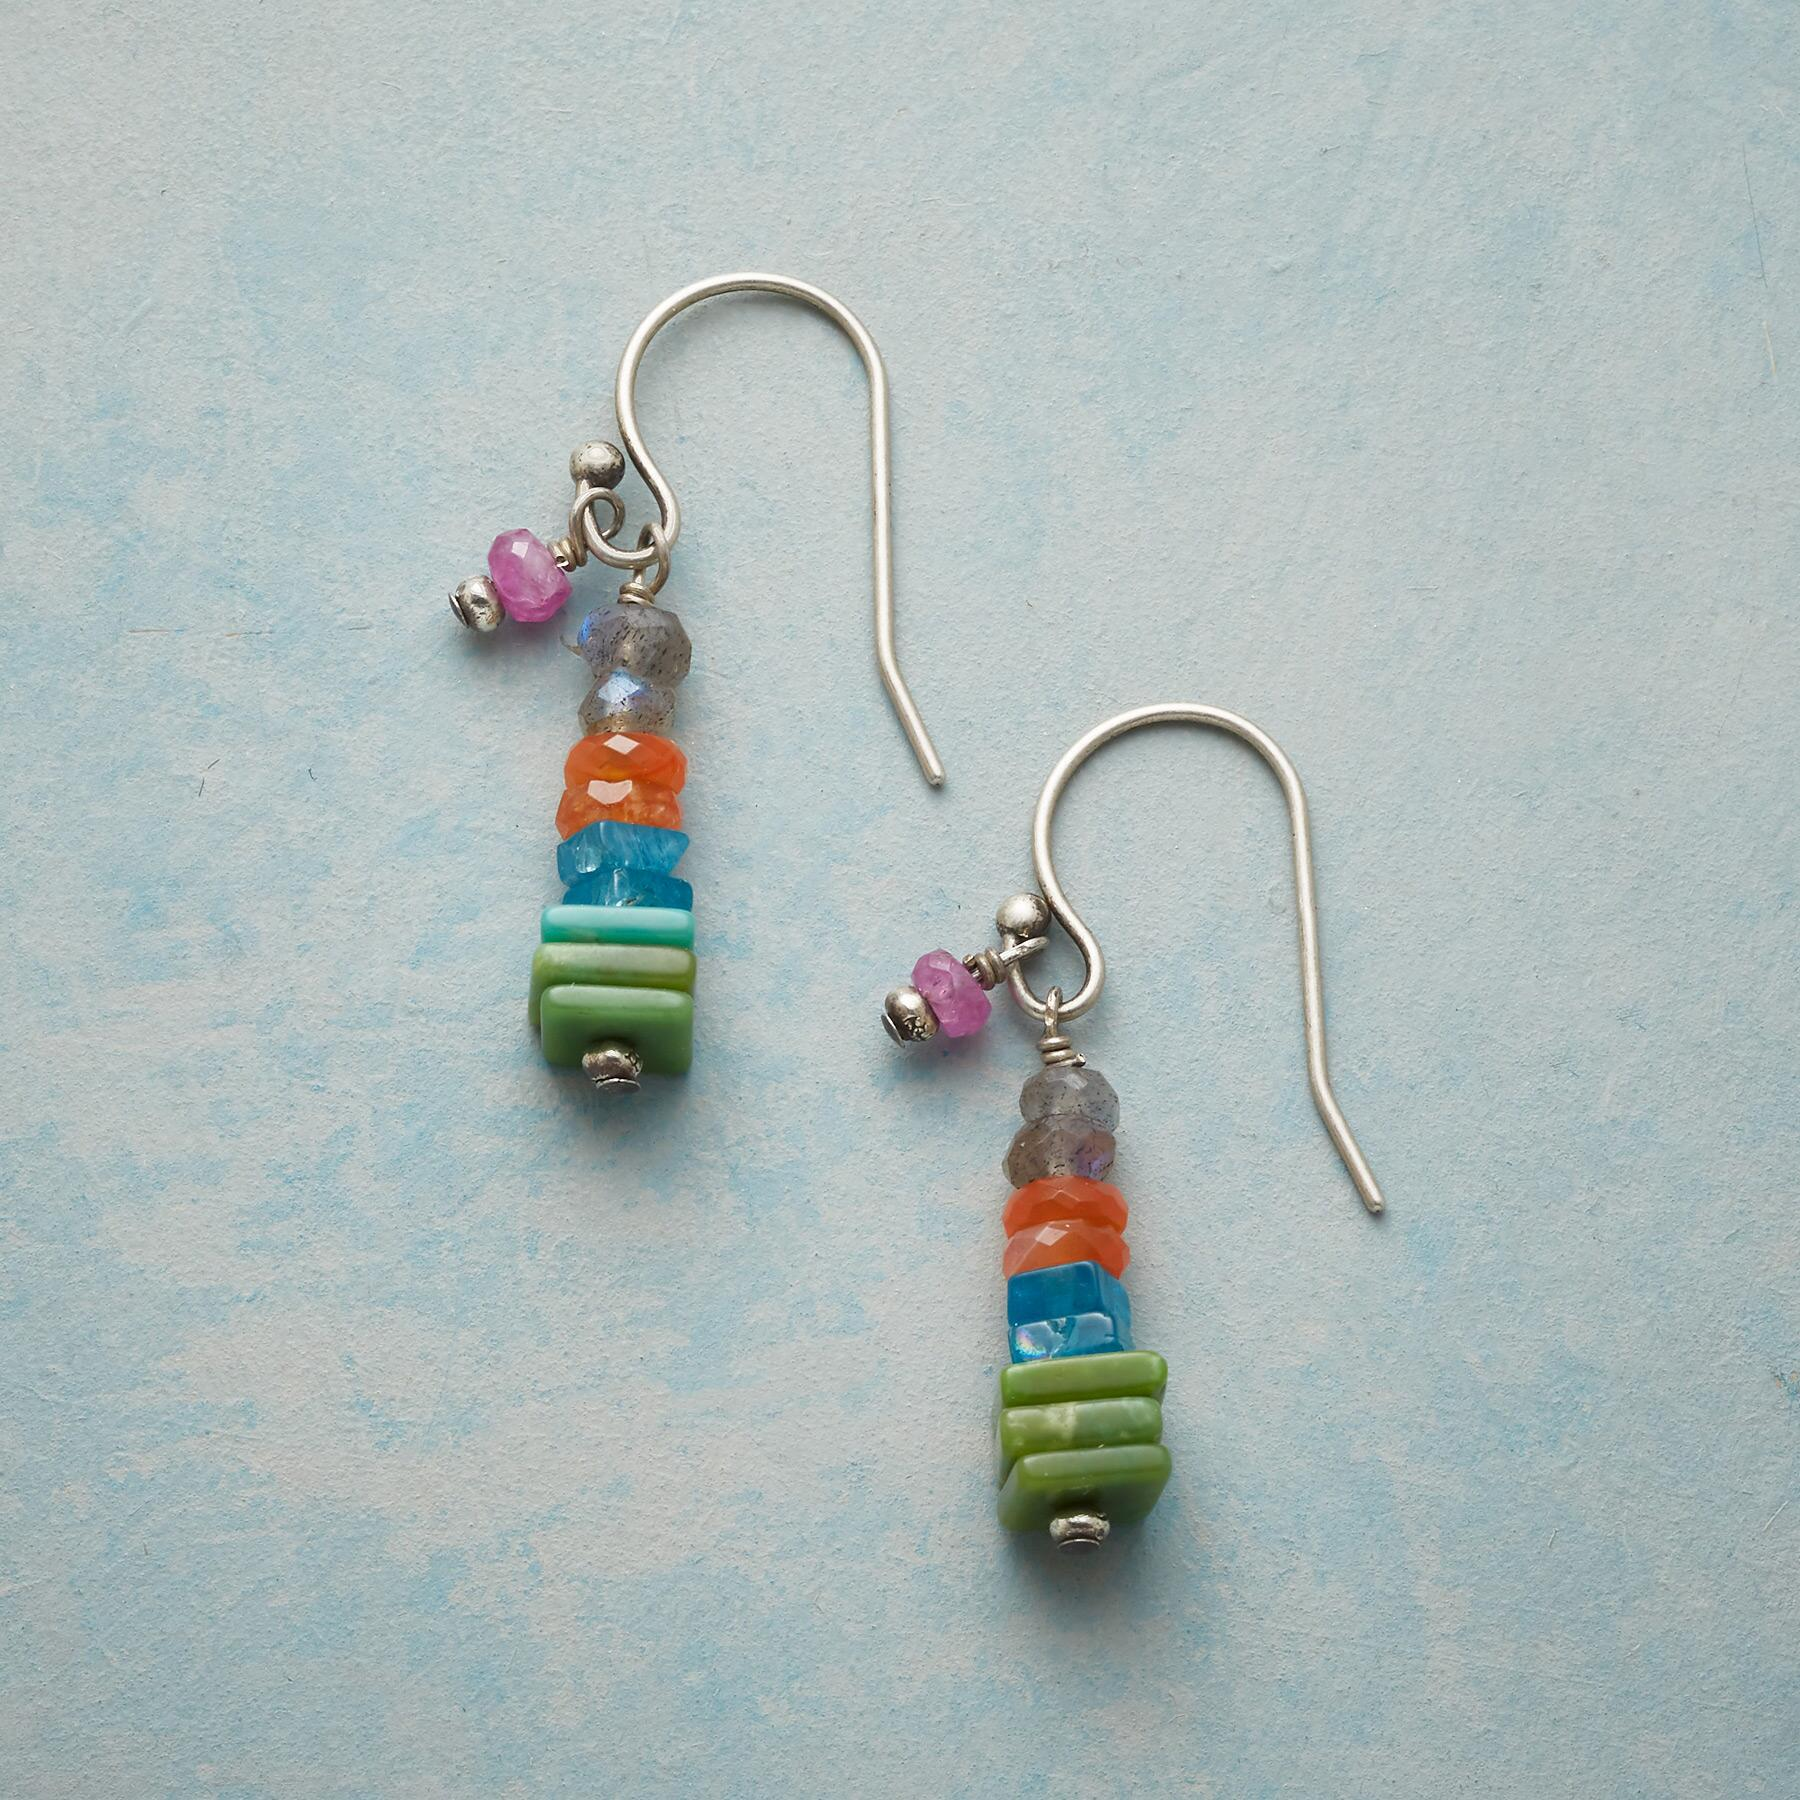 STONE AGE EARRINGS: View 1